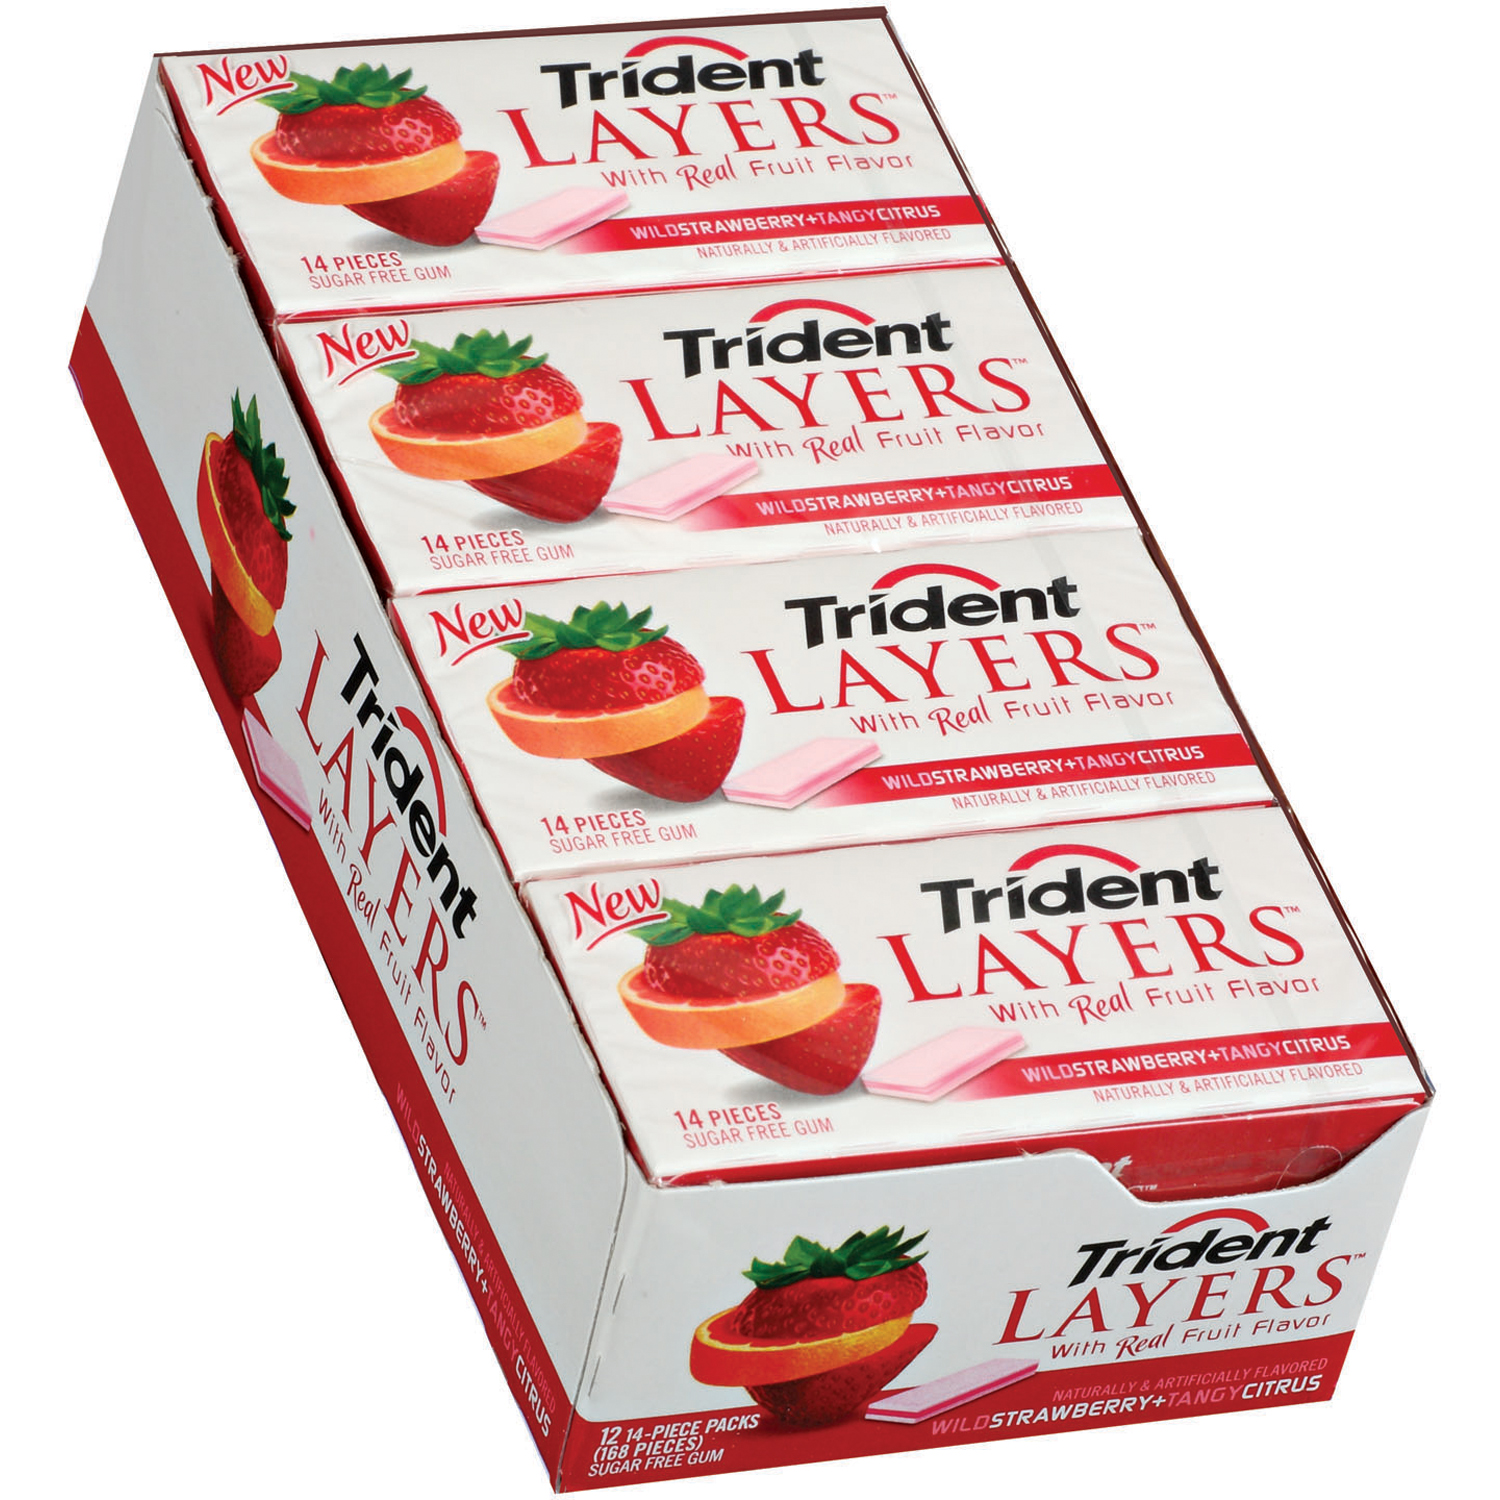 Trident Layers Gum Wild Strawberry/Tangy Citrus Sugar Free, 14 Piece Packs, 12 Ct